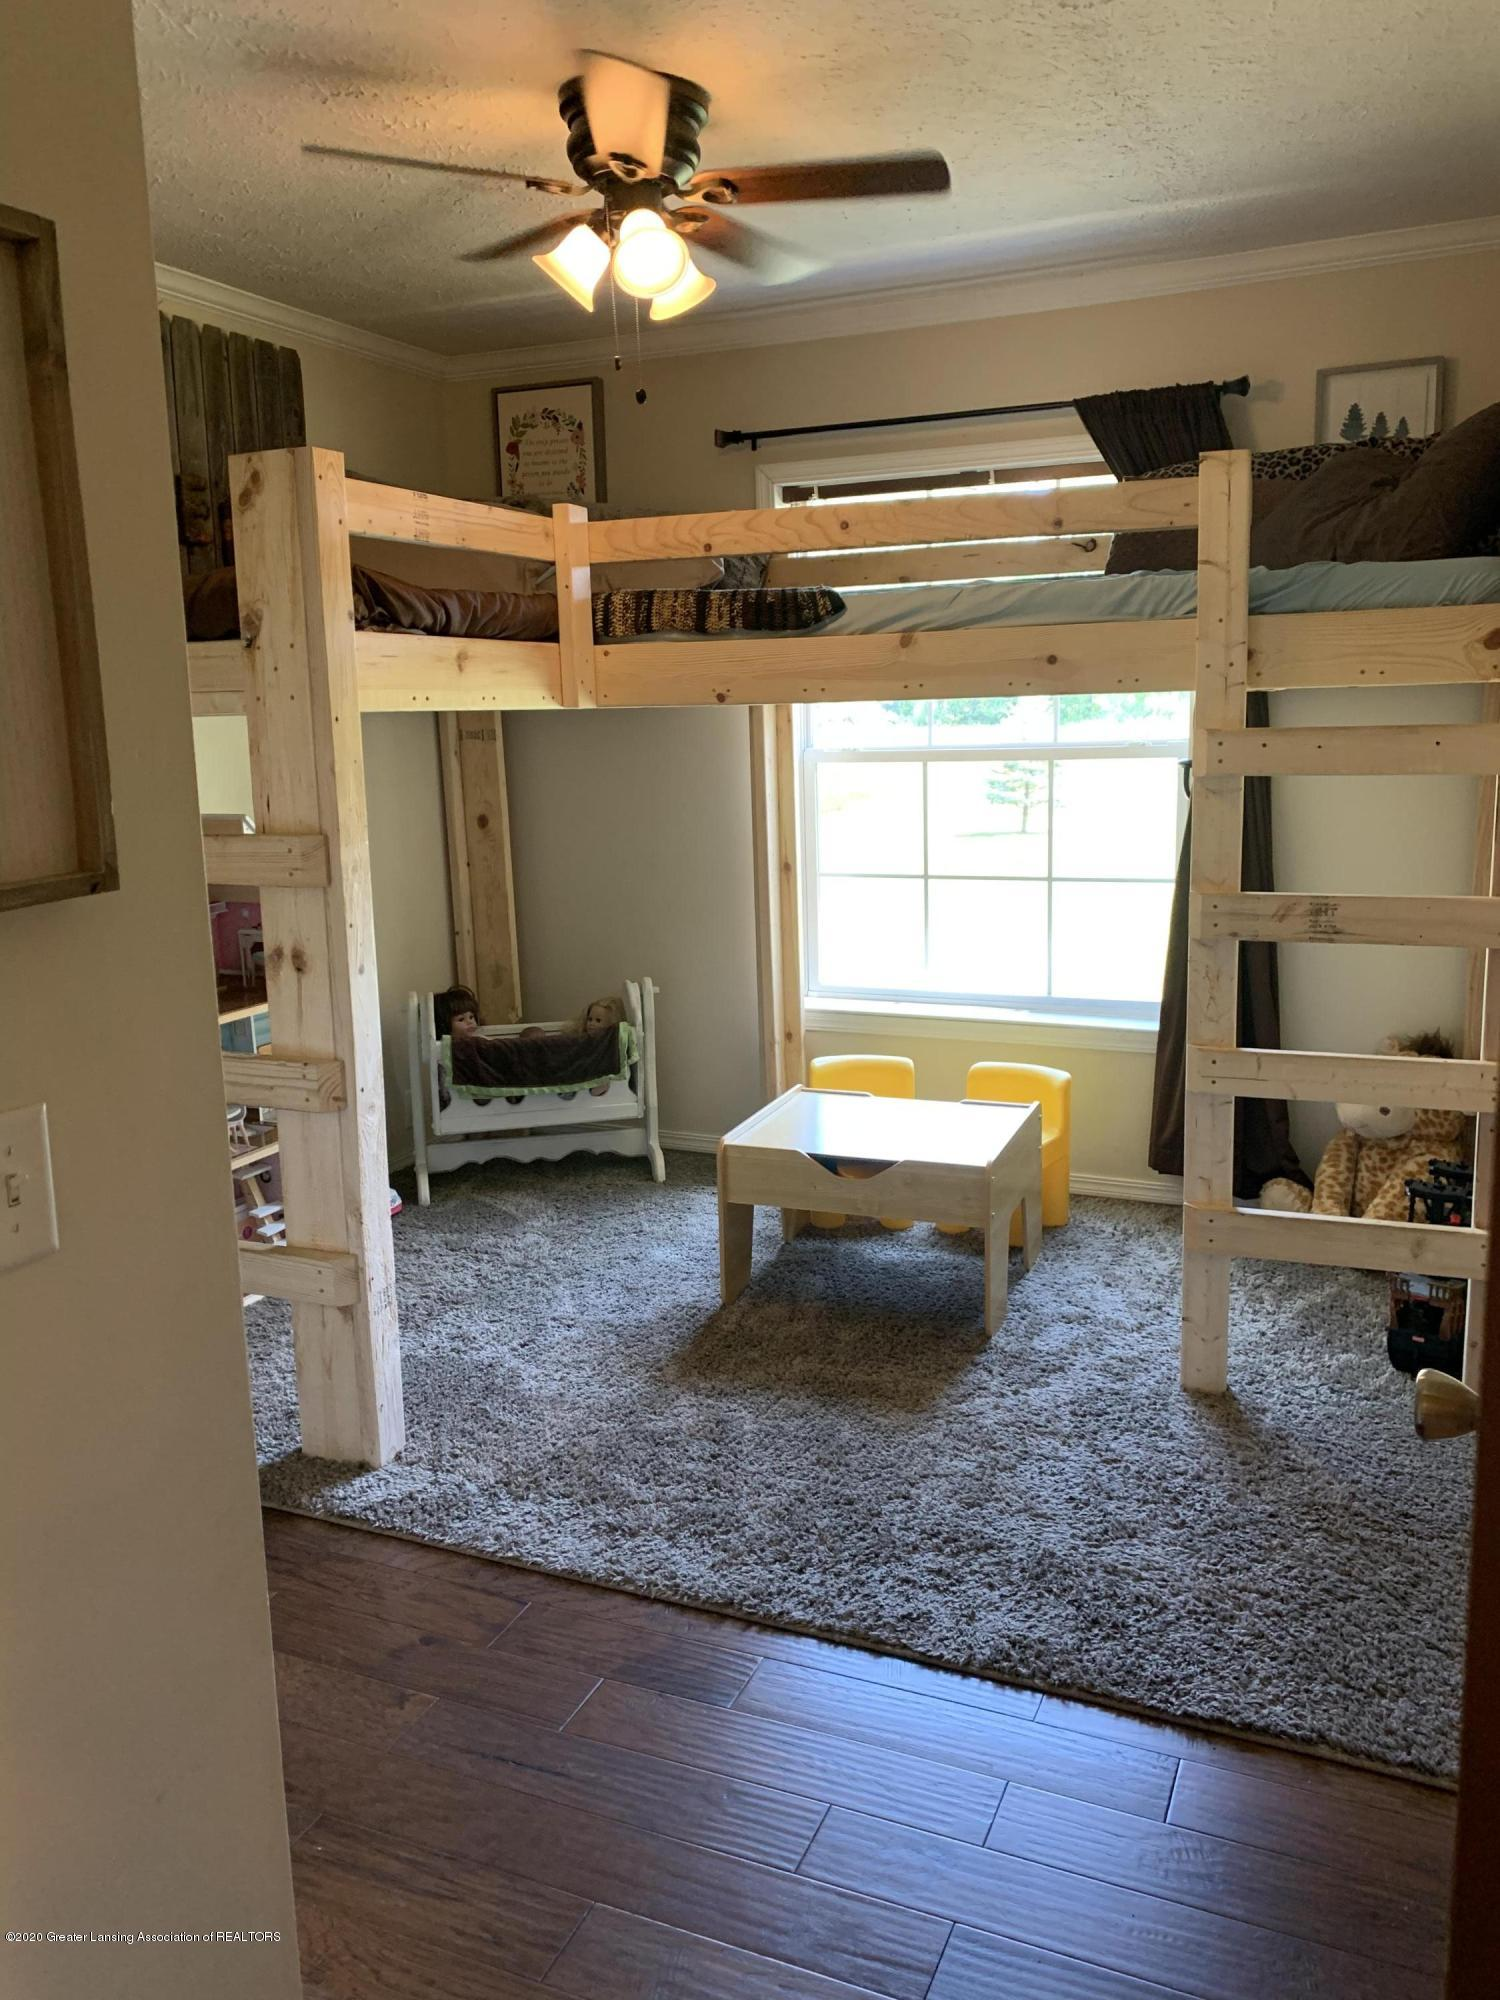 7582 S Gale Rd - Bedroom - 23